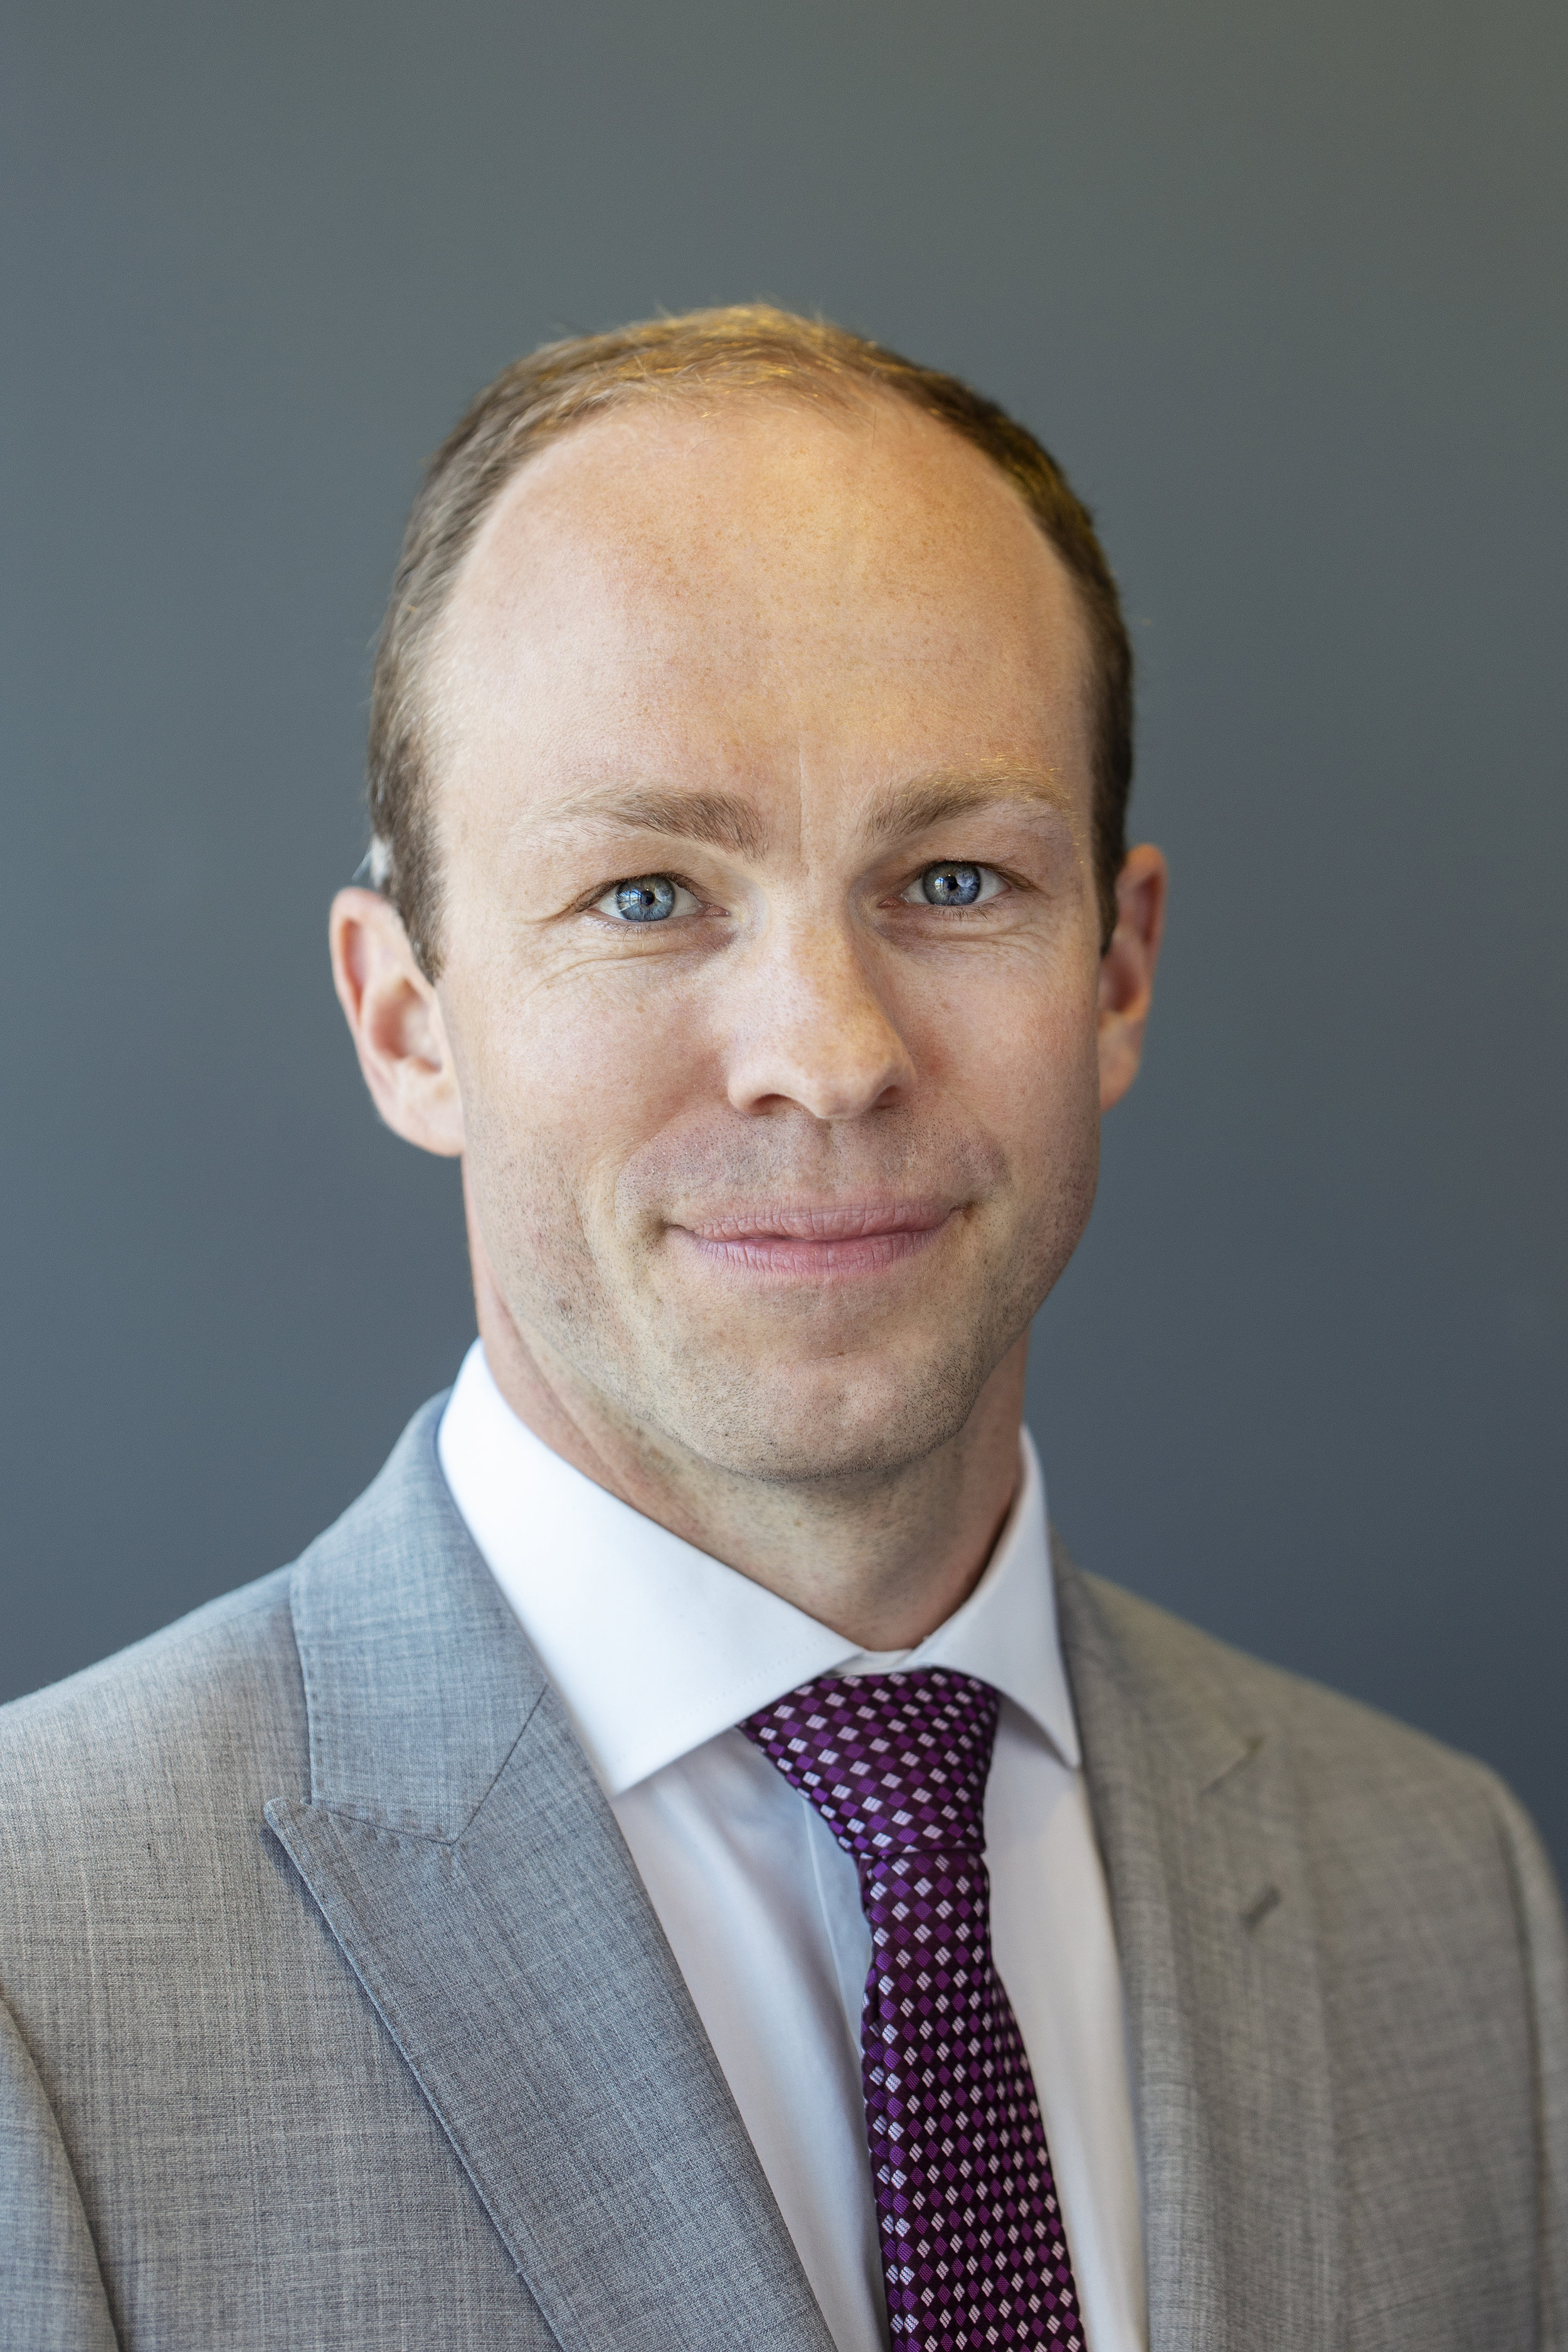 David Yetman, Senior Associate   David joined Pinel Advocates in 2011 and has a wealth of corporate and commercial experience. He advises on legal opinions, financings and listings. Clients praise his personal and enthusiastic approach.